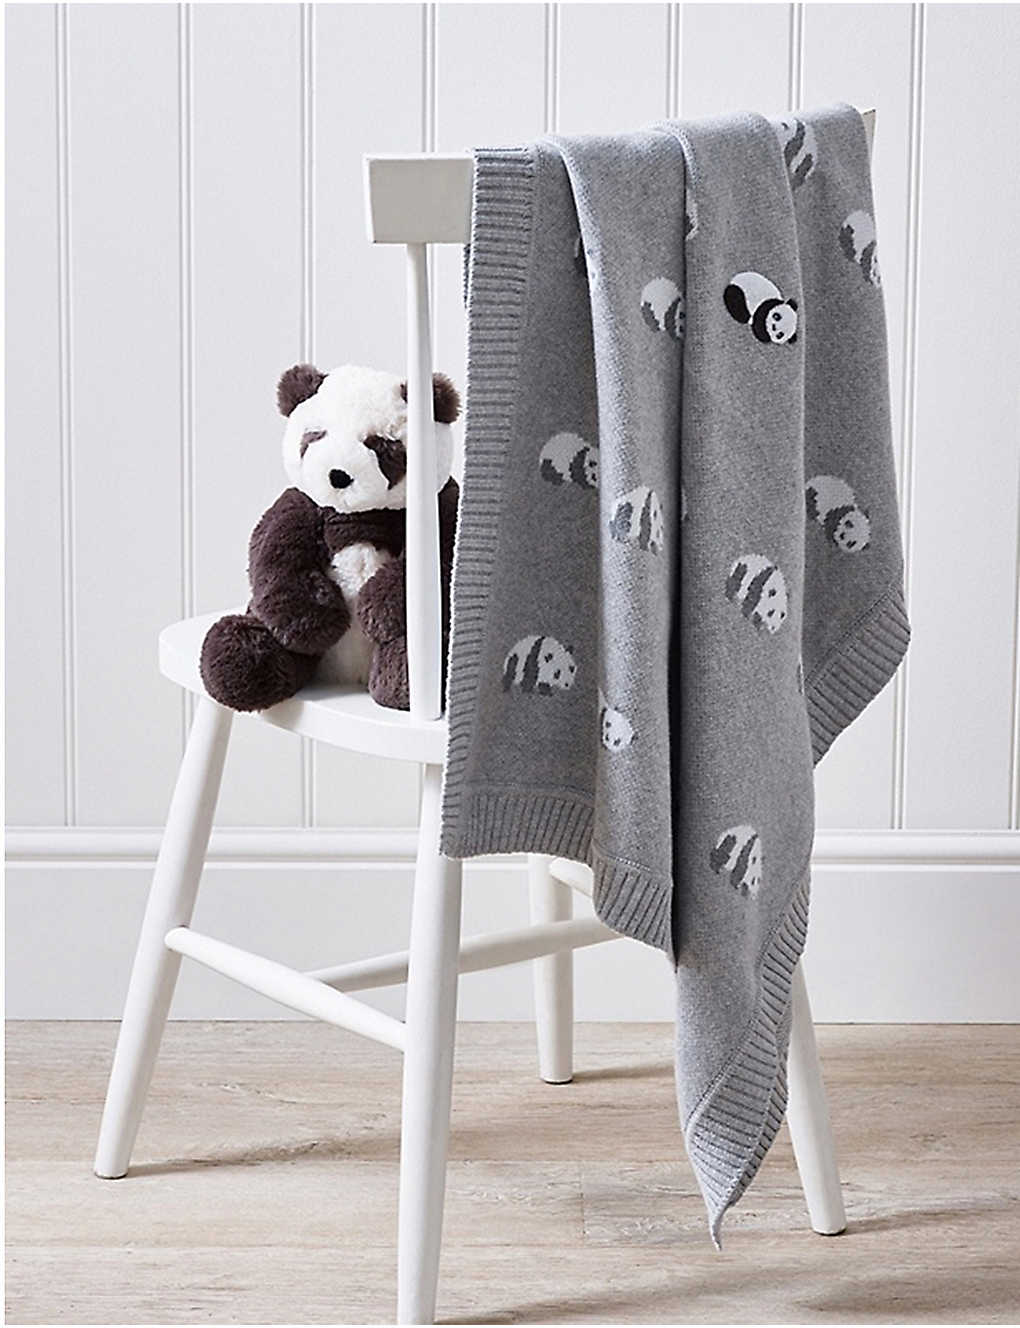 THE LITTLE WHITE COMPANY: Panda cotton baby blanket